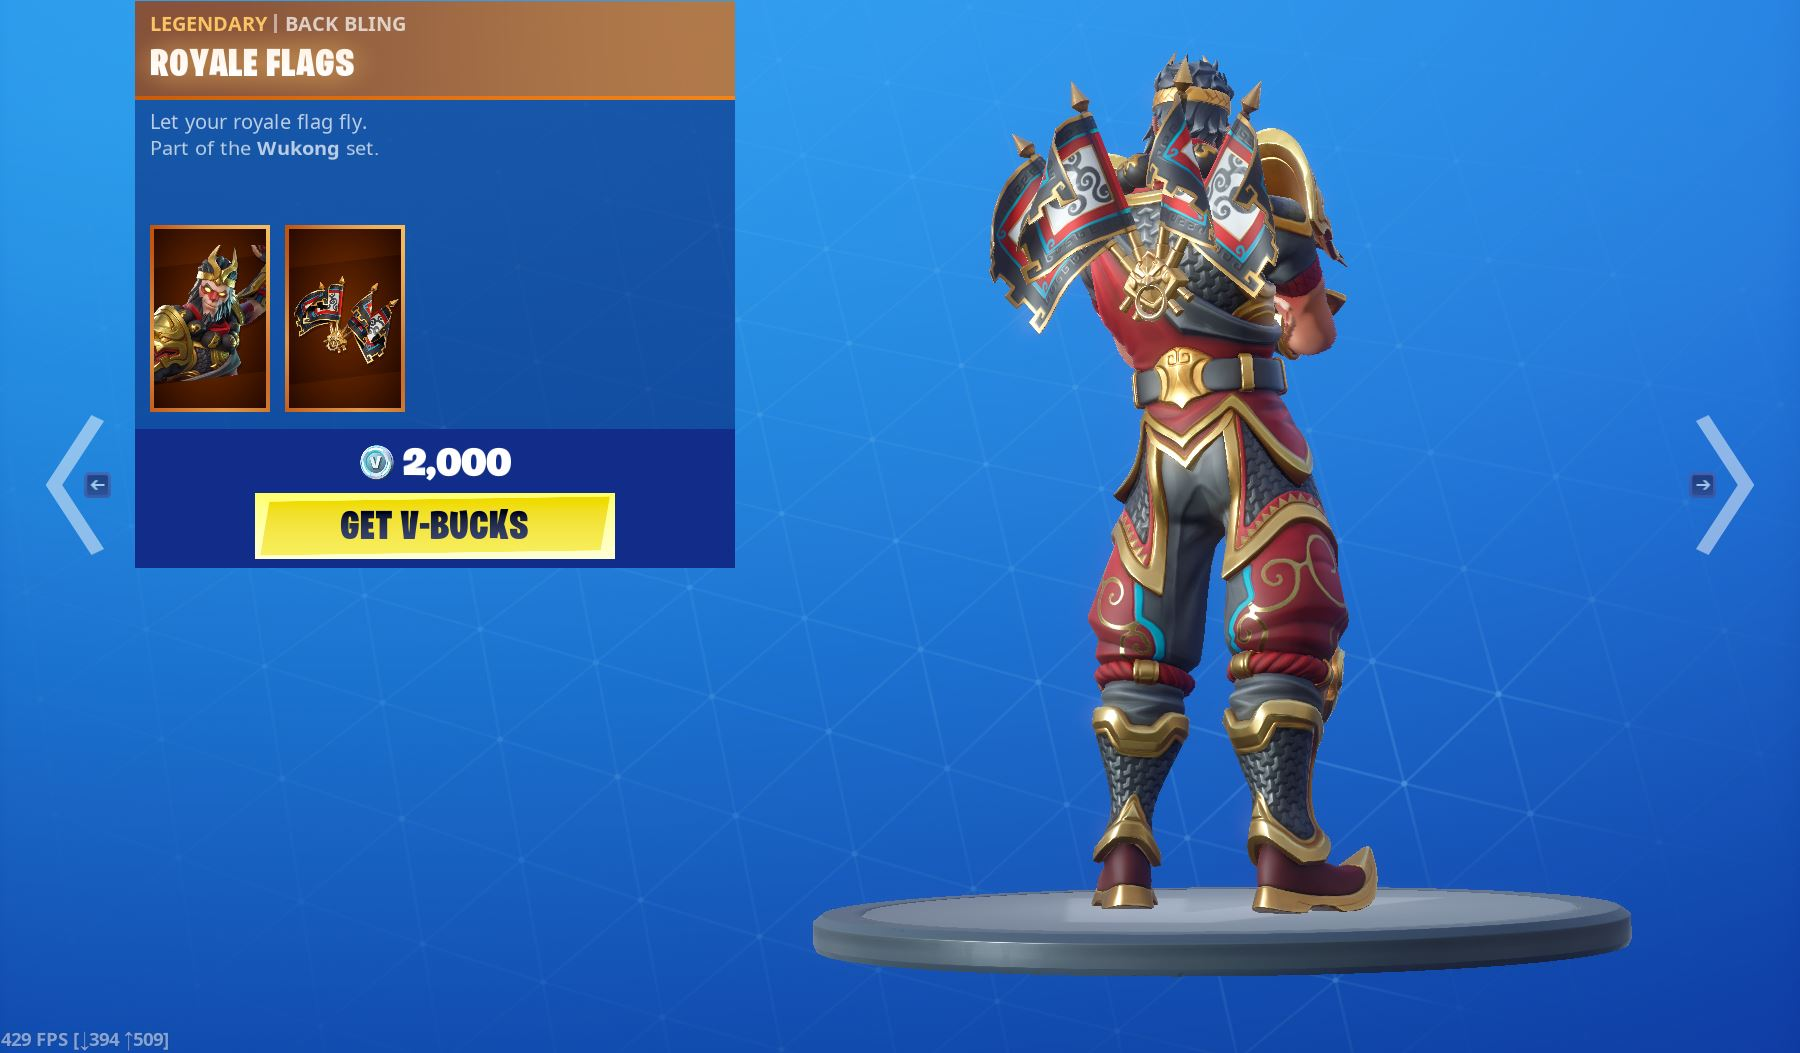 Legendary Royale Flags Back Bling